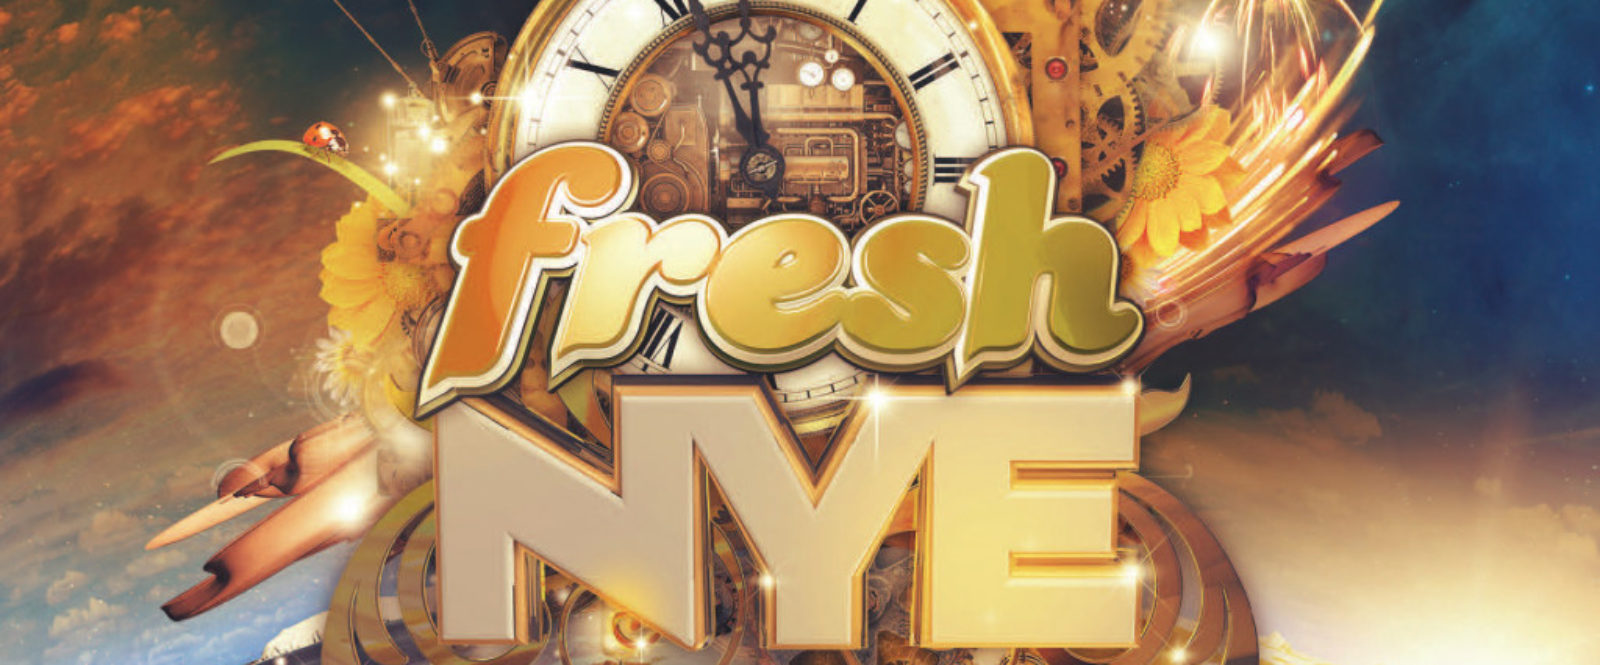 Fresh NYE 2015/16 ULTIMATE PLAYLIST!